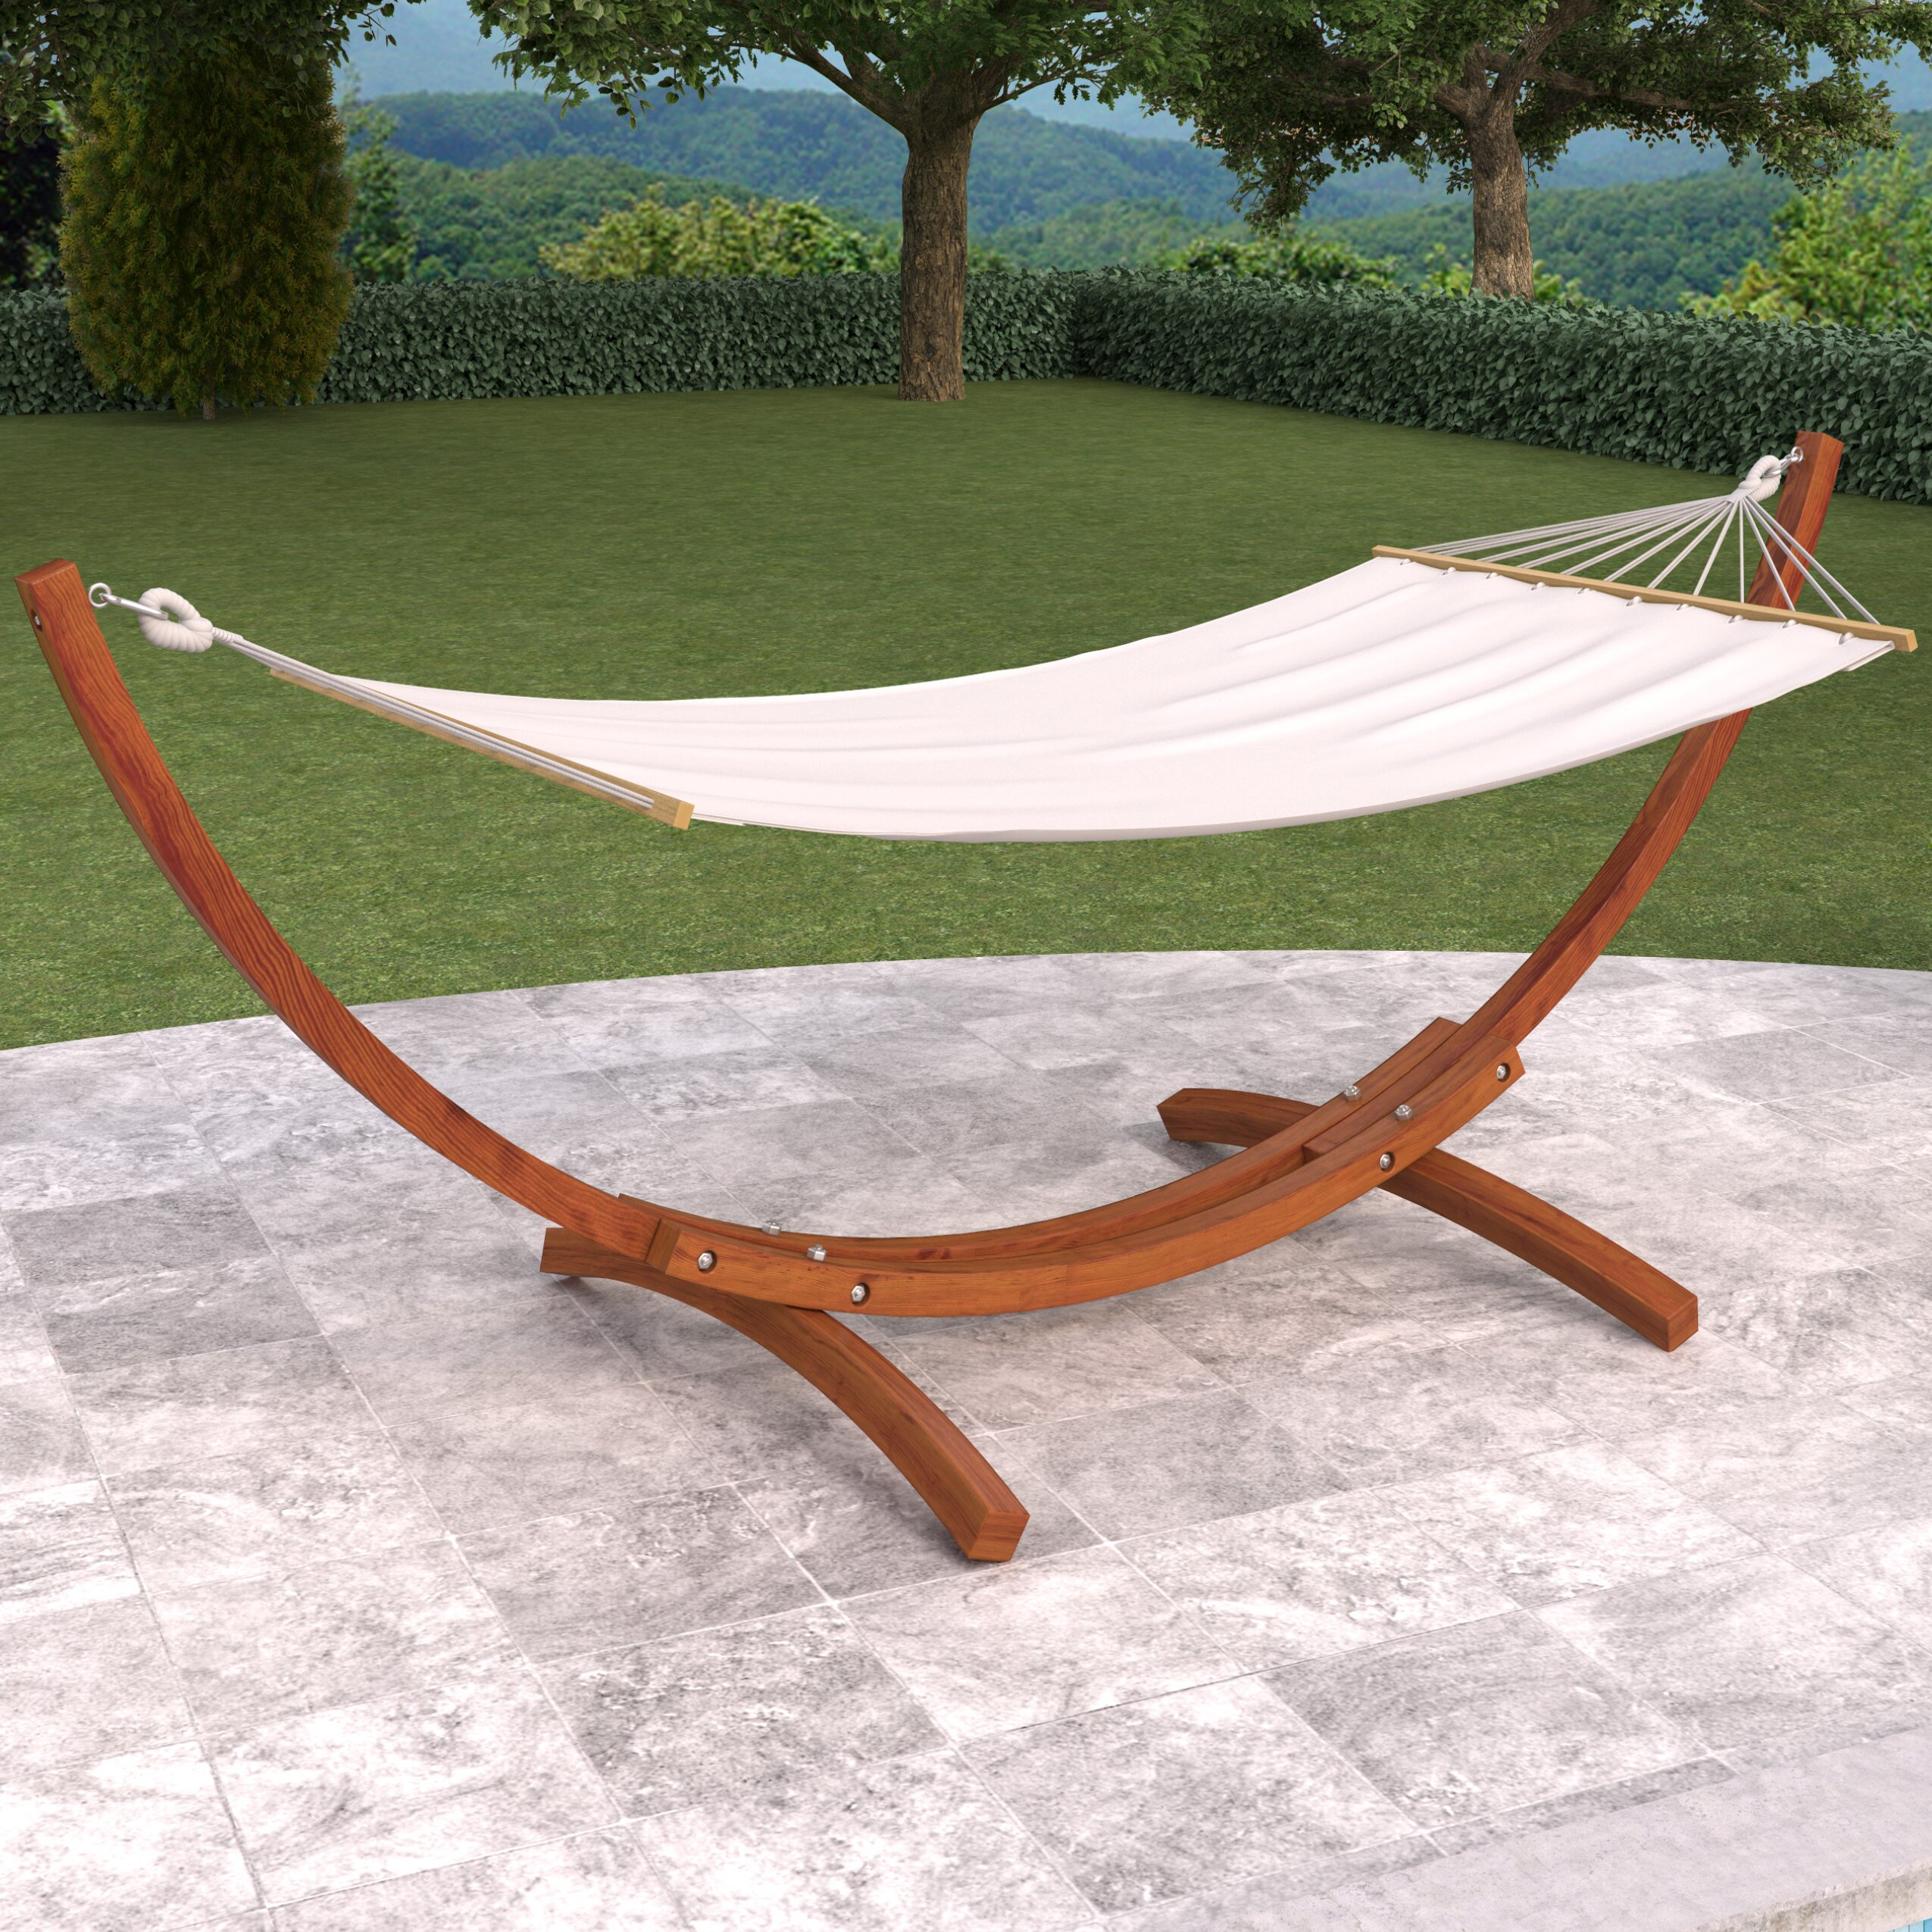 Backyard Hammock Reviews : dCOR design Wood Canyon Patio Hammock with Stand & Reviews  Wayfair